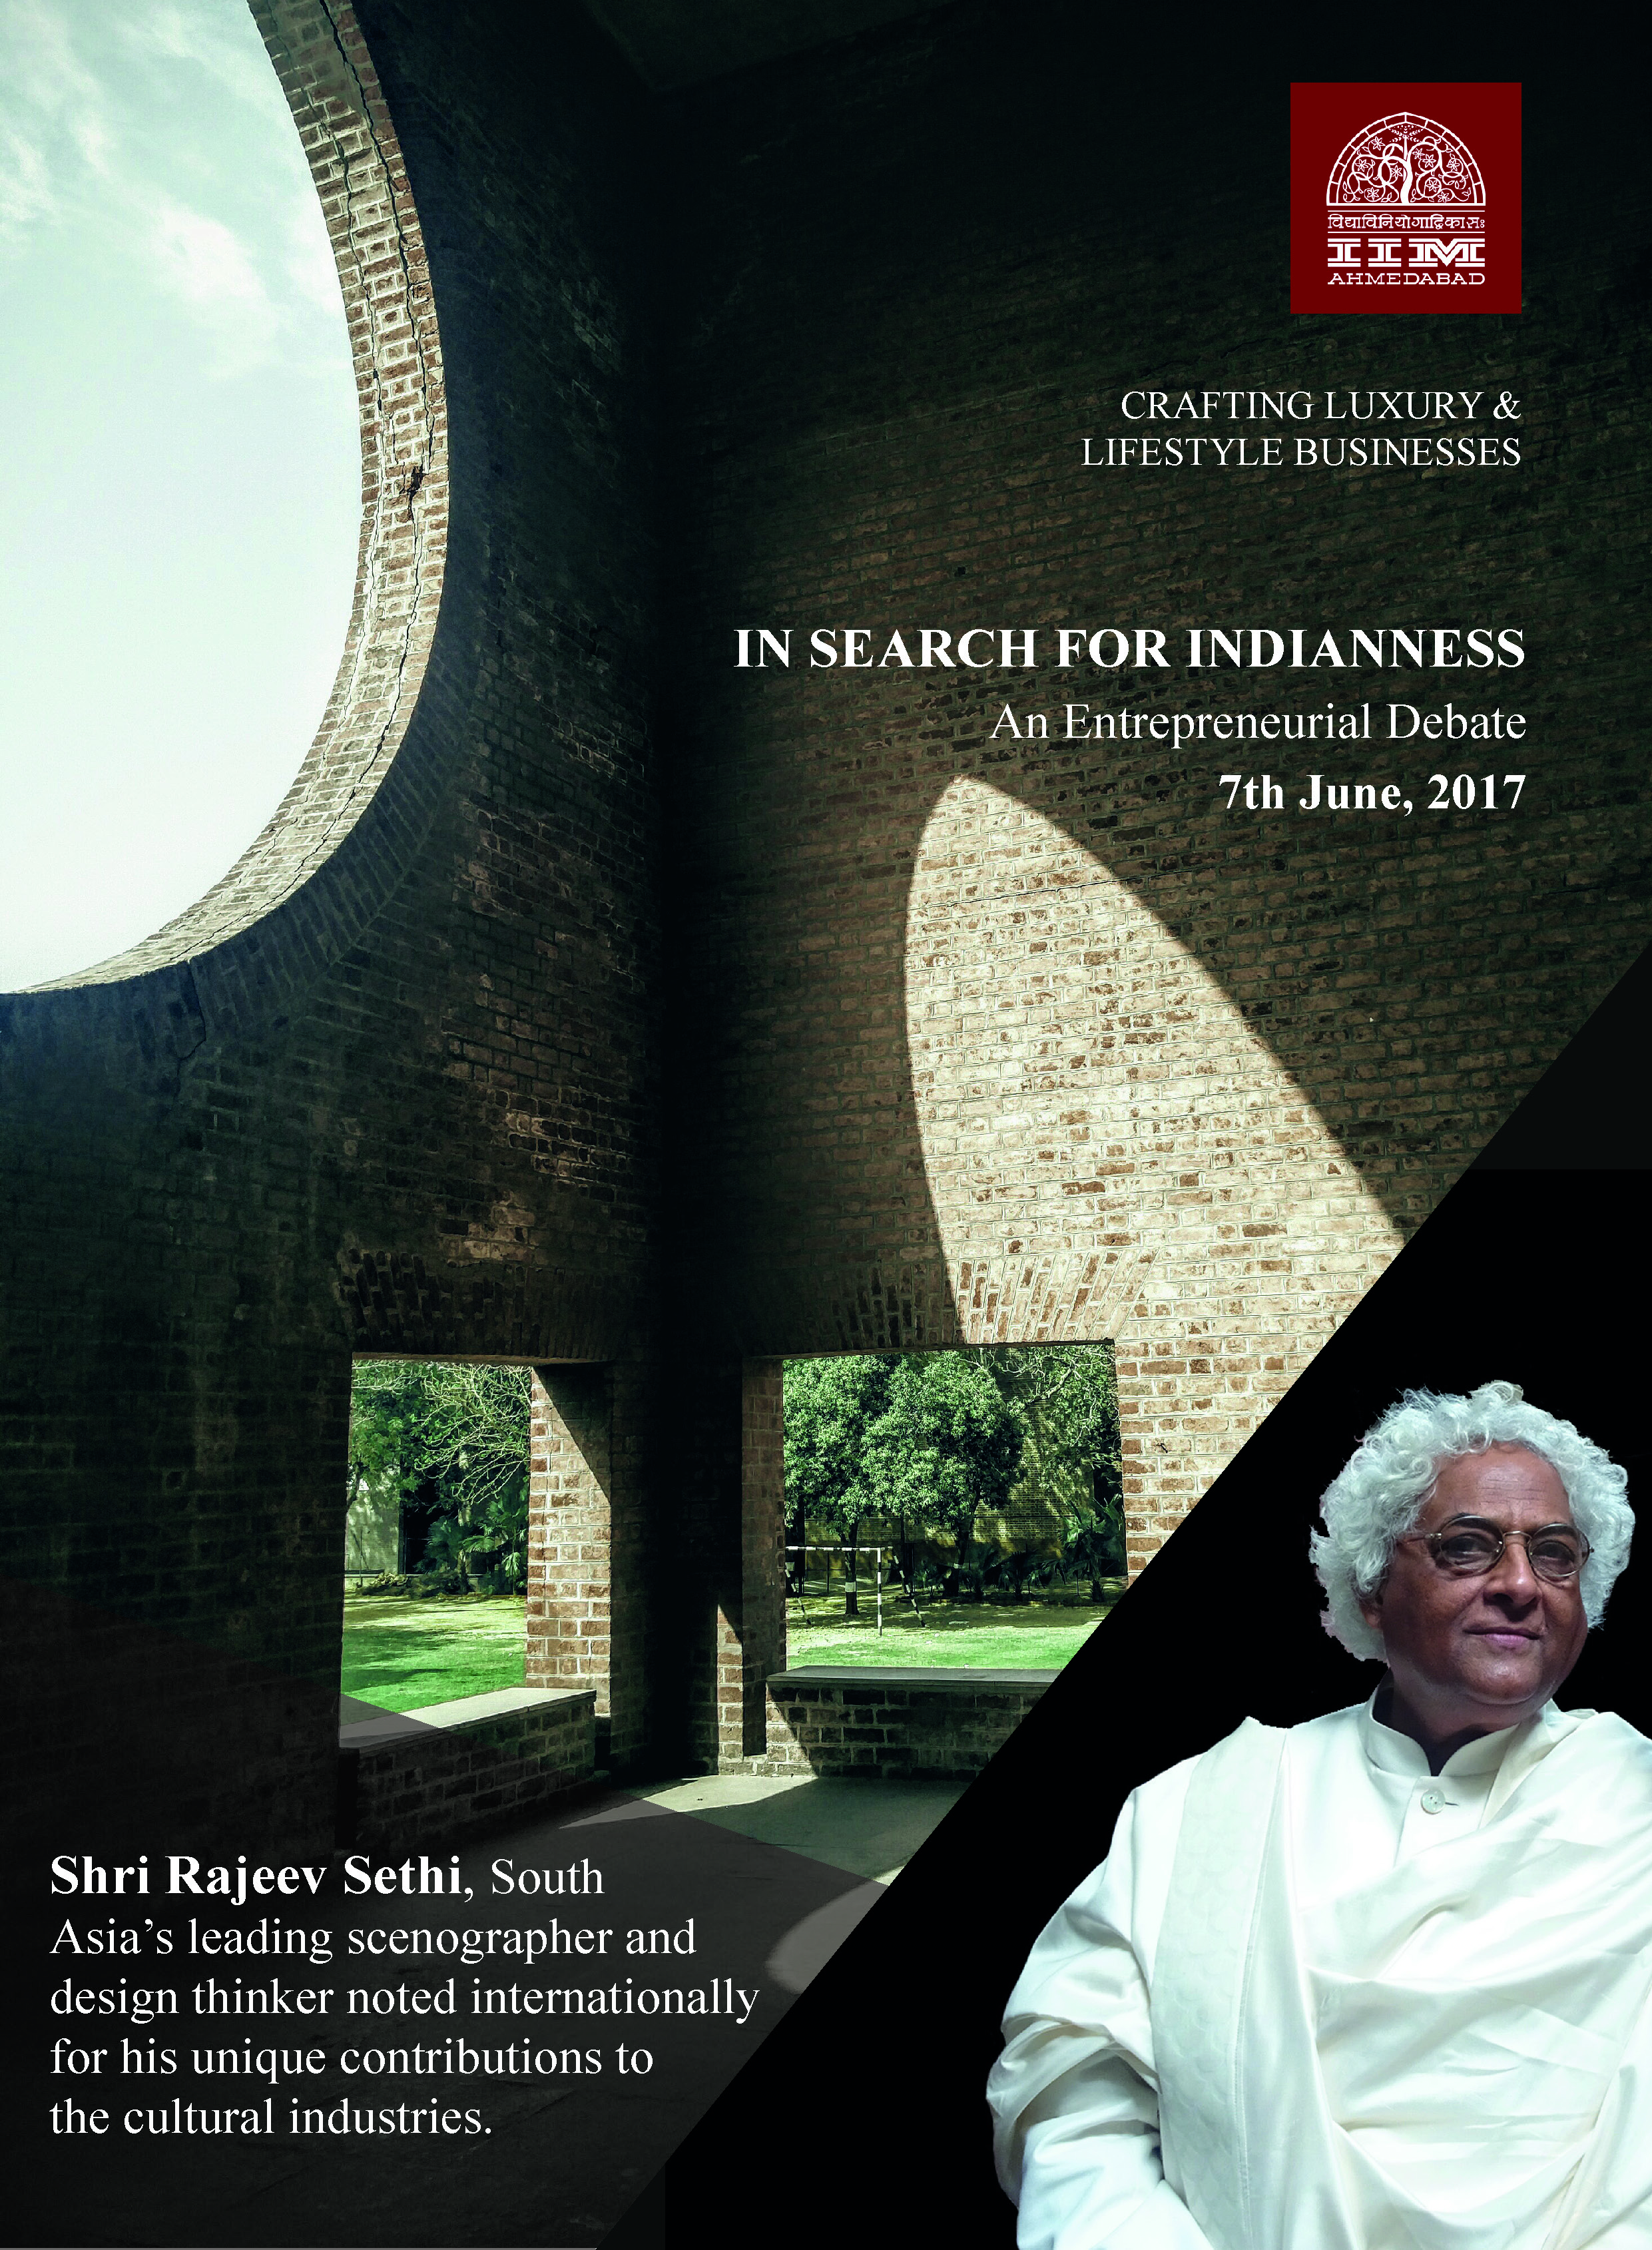 In Search for 'Indianness' by Shri Rajeev Sethi on June 7, 2017